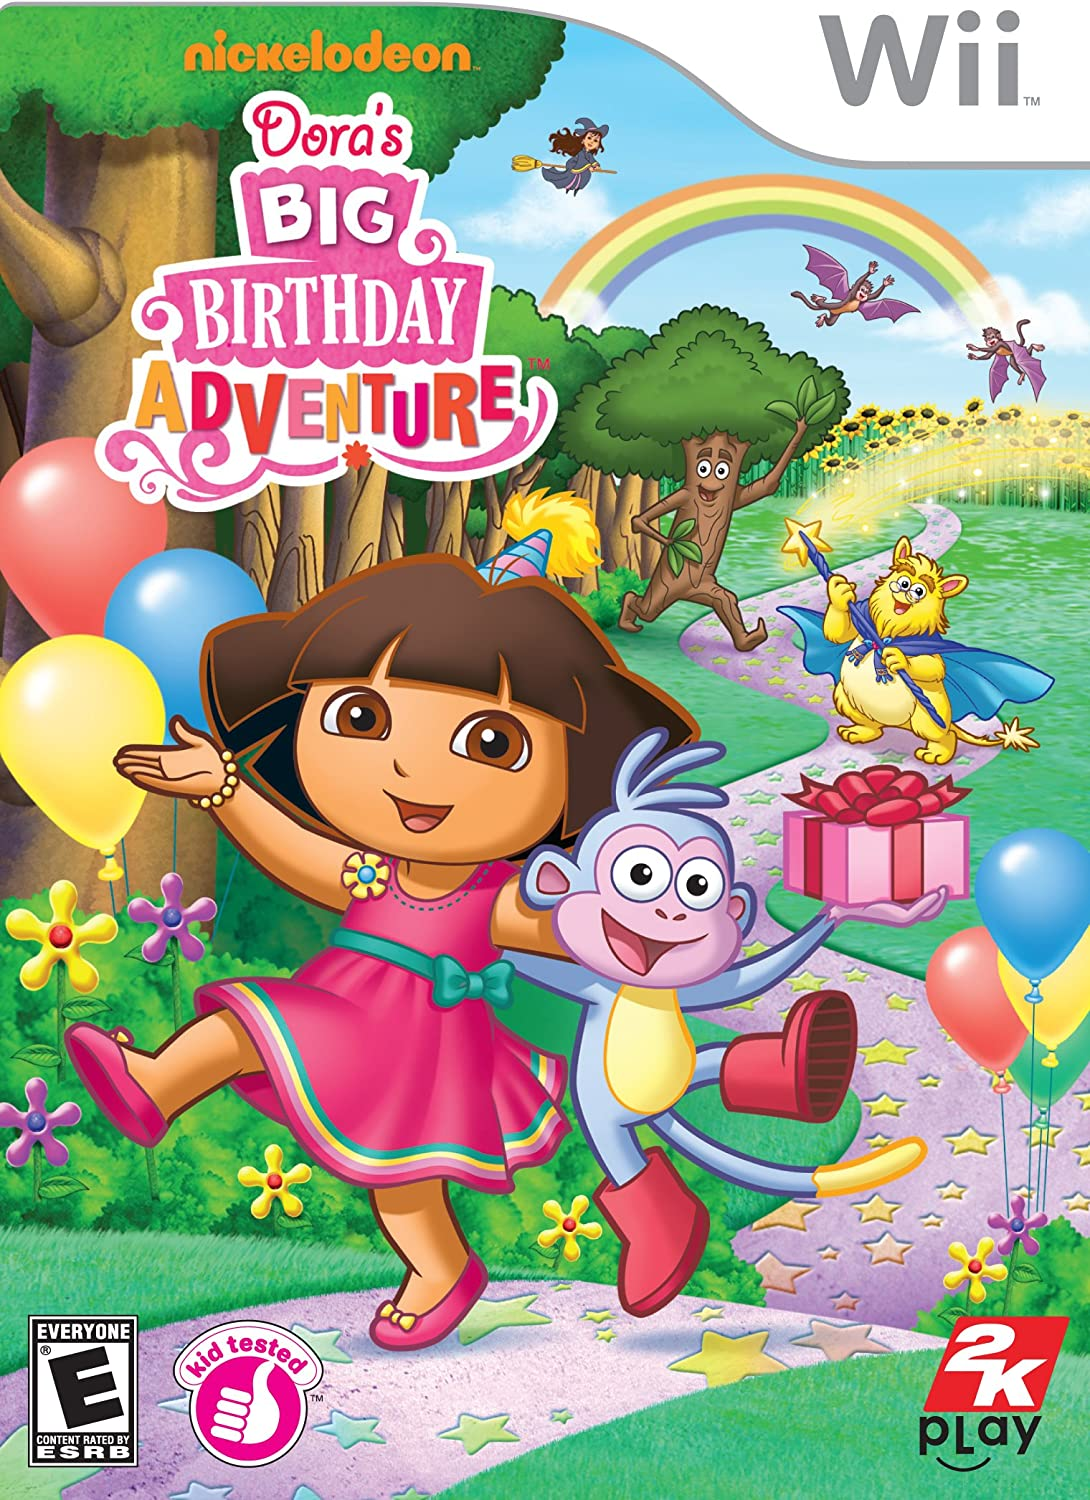 Amazoncom Dora the Explorer Doras Big Birthday Adventure